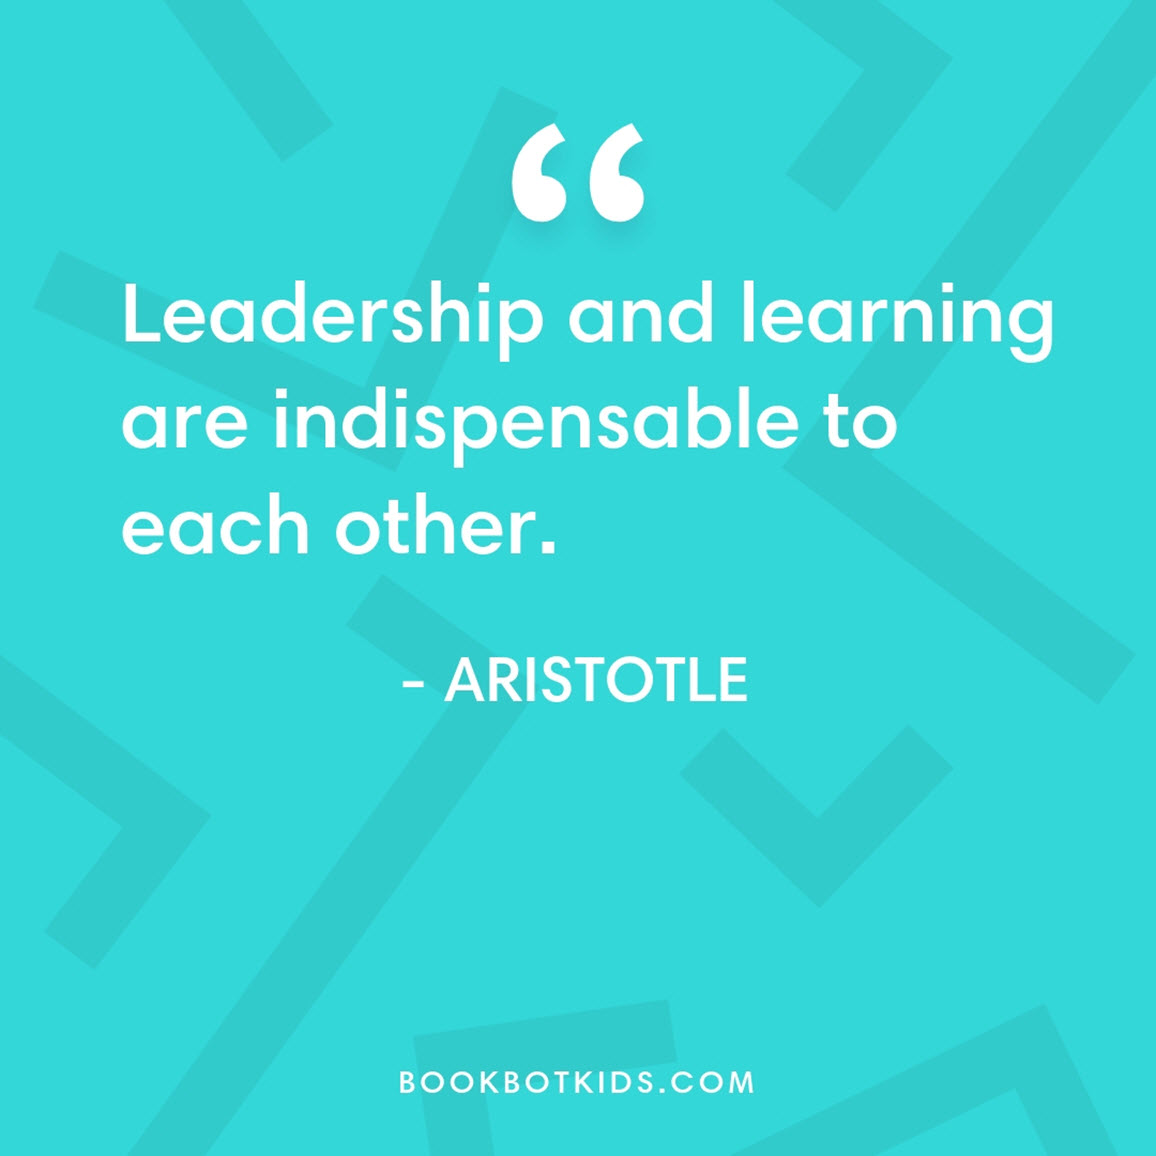 Leadership and learning are indispensable to each other. – Aristotle